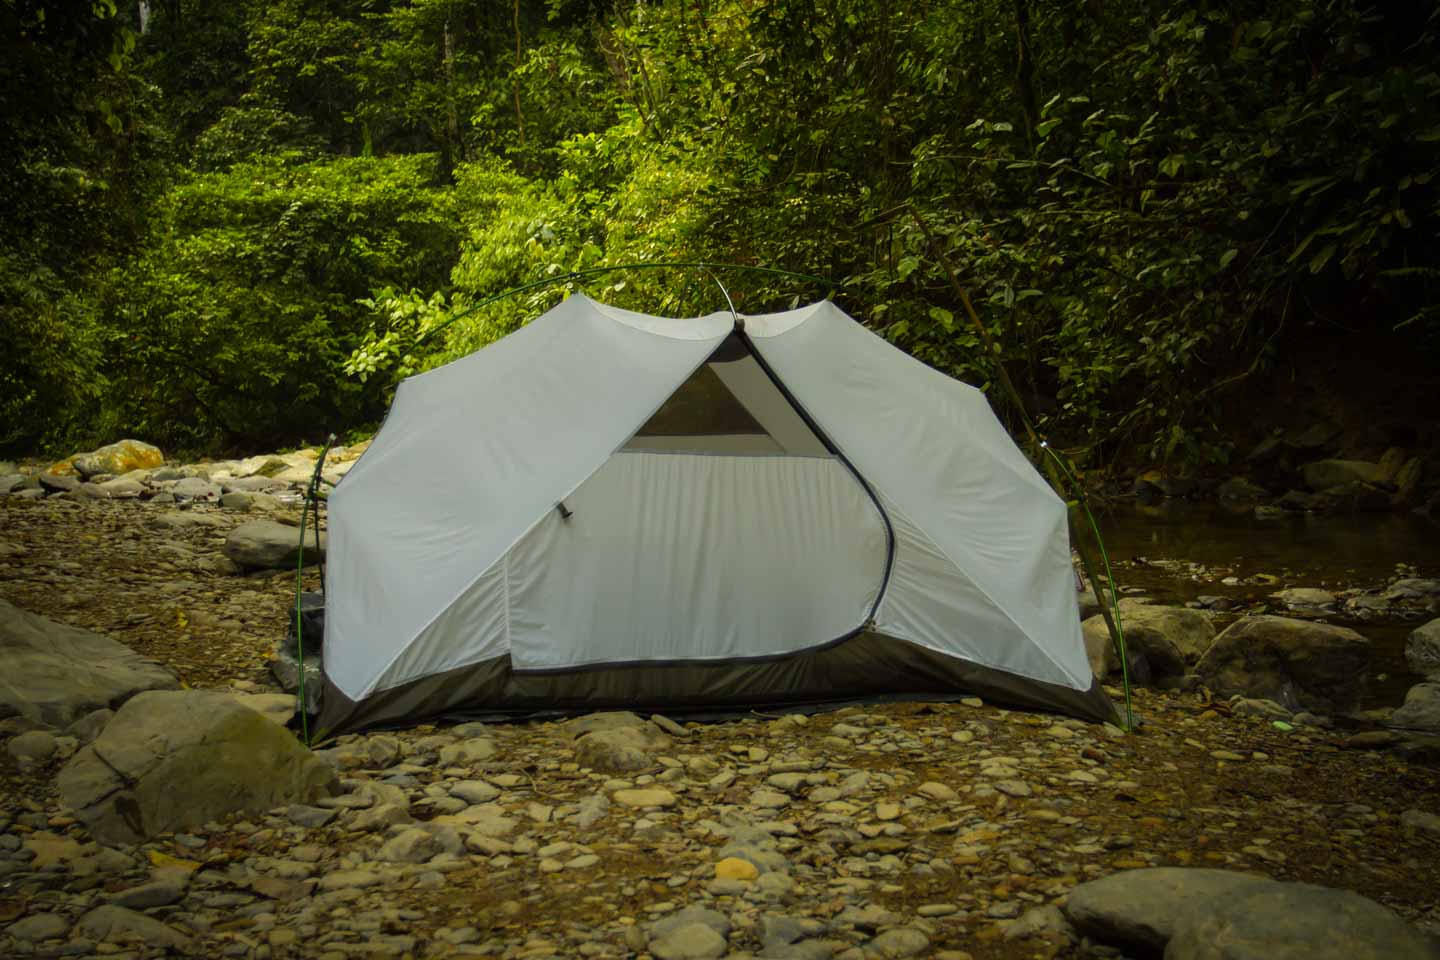 Wild camping on a jungle track in the Sumatra rainforest